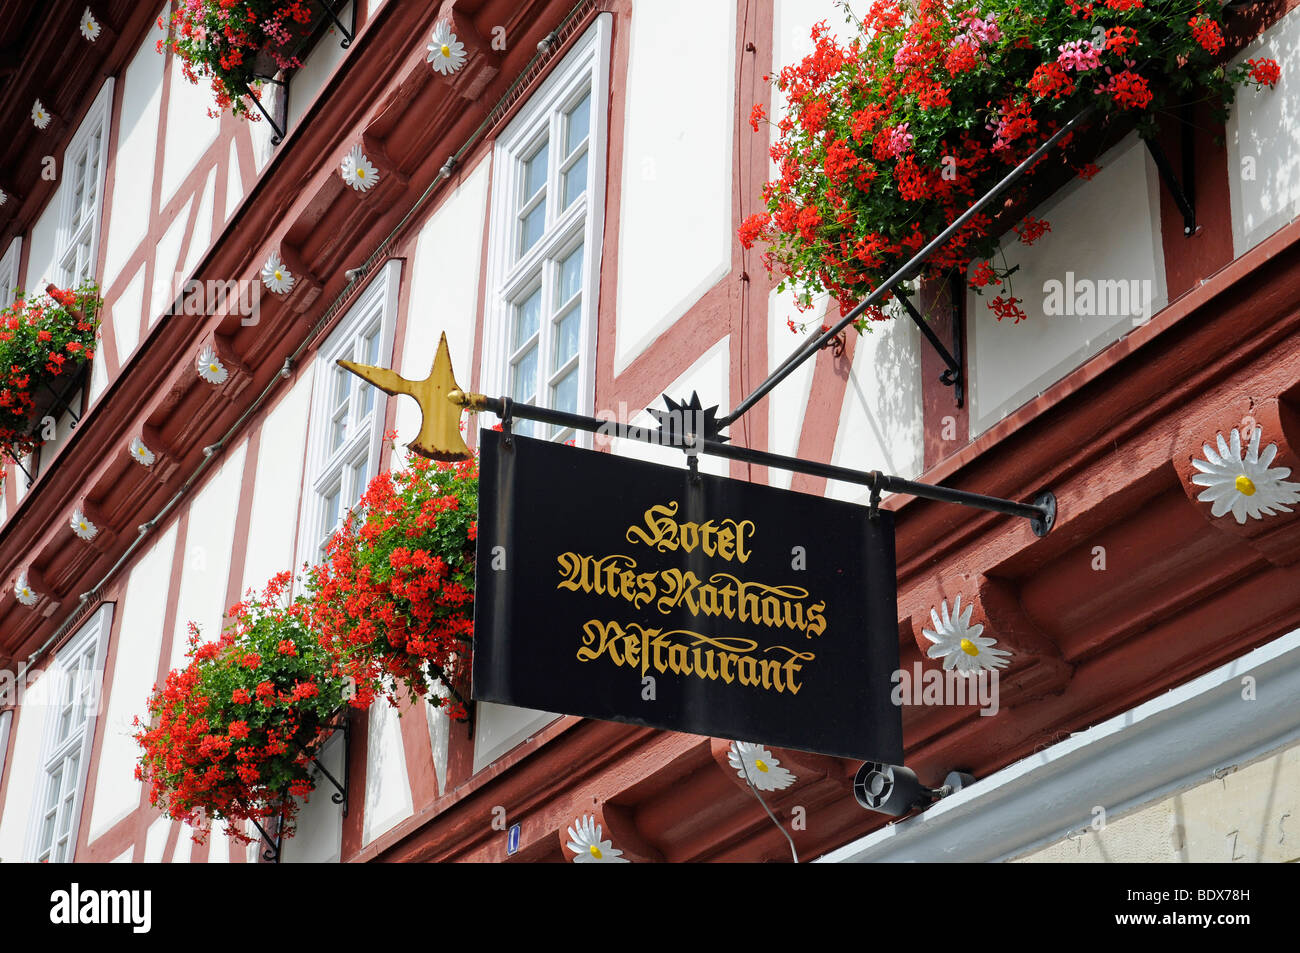 Hotel sign on the half-timbered historic Town Hall, Wolfhagen, Habichtswald National Park, Hesse, Germany, Europe - Stock Image